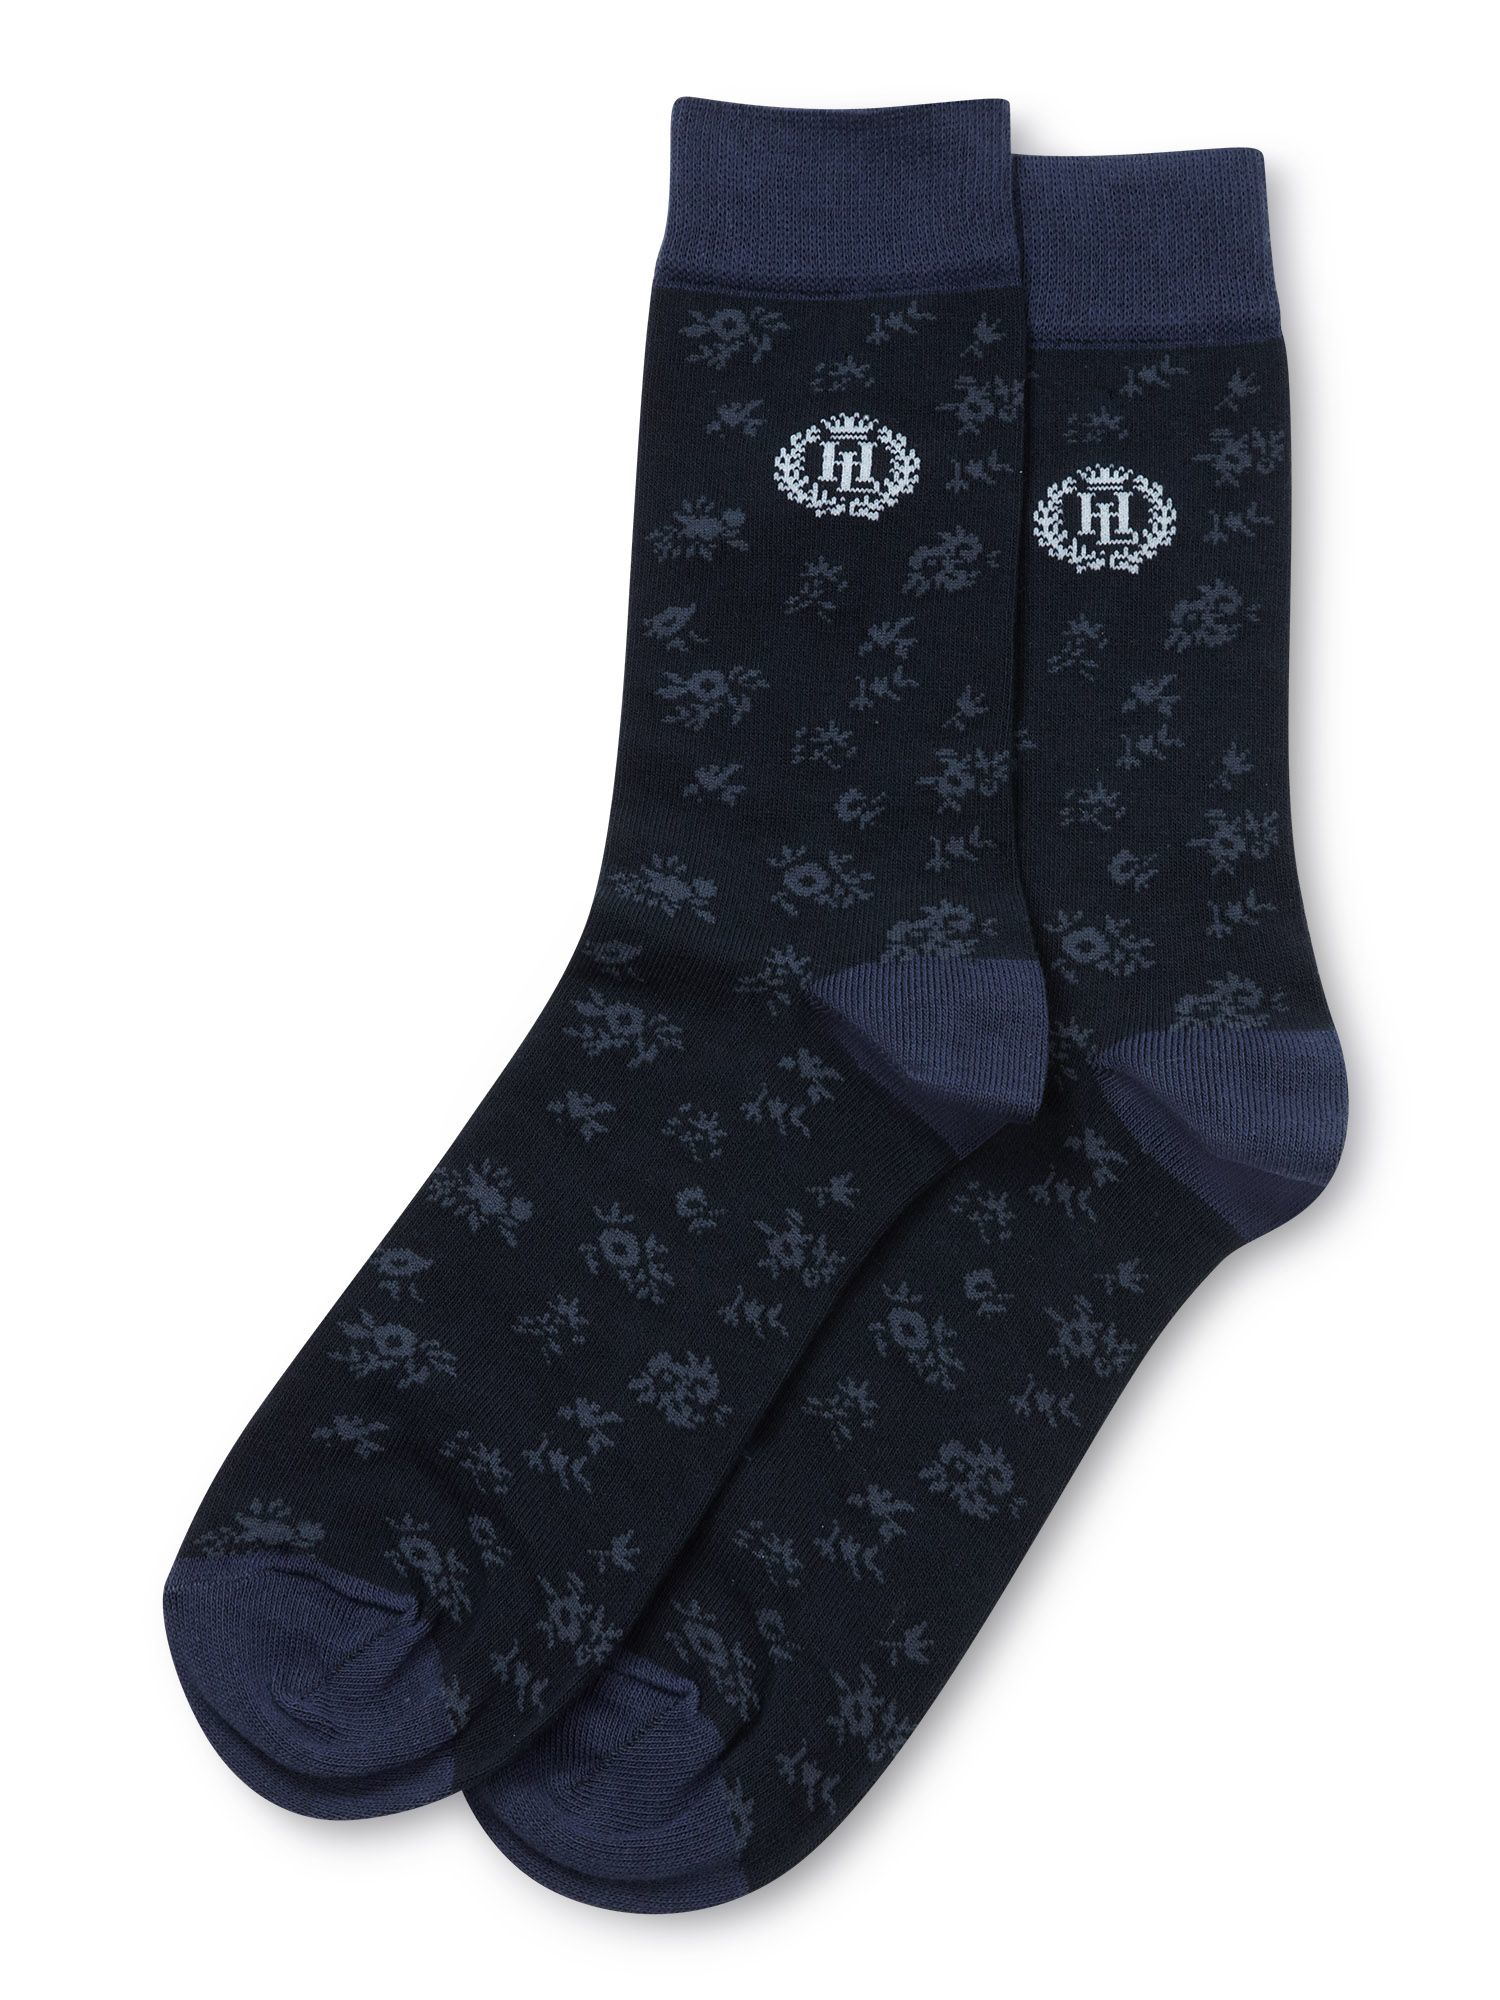 Blackjack socks